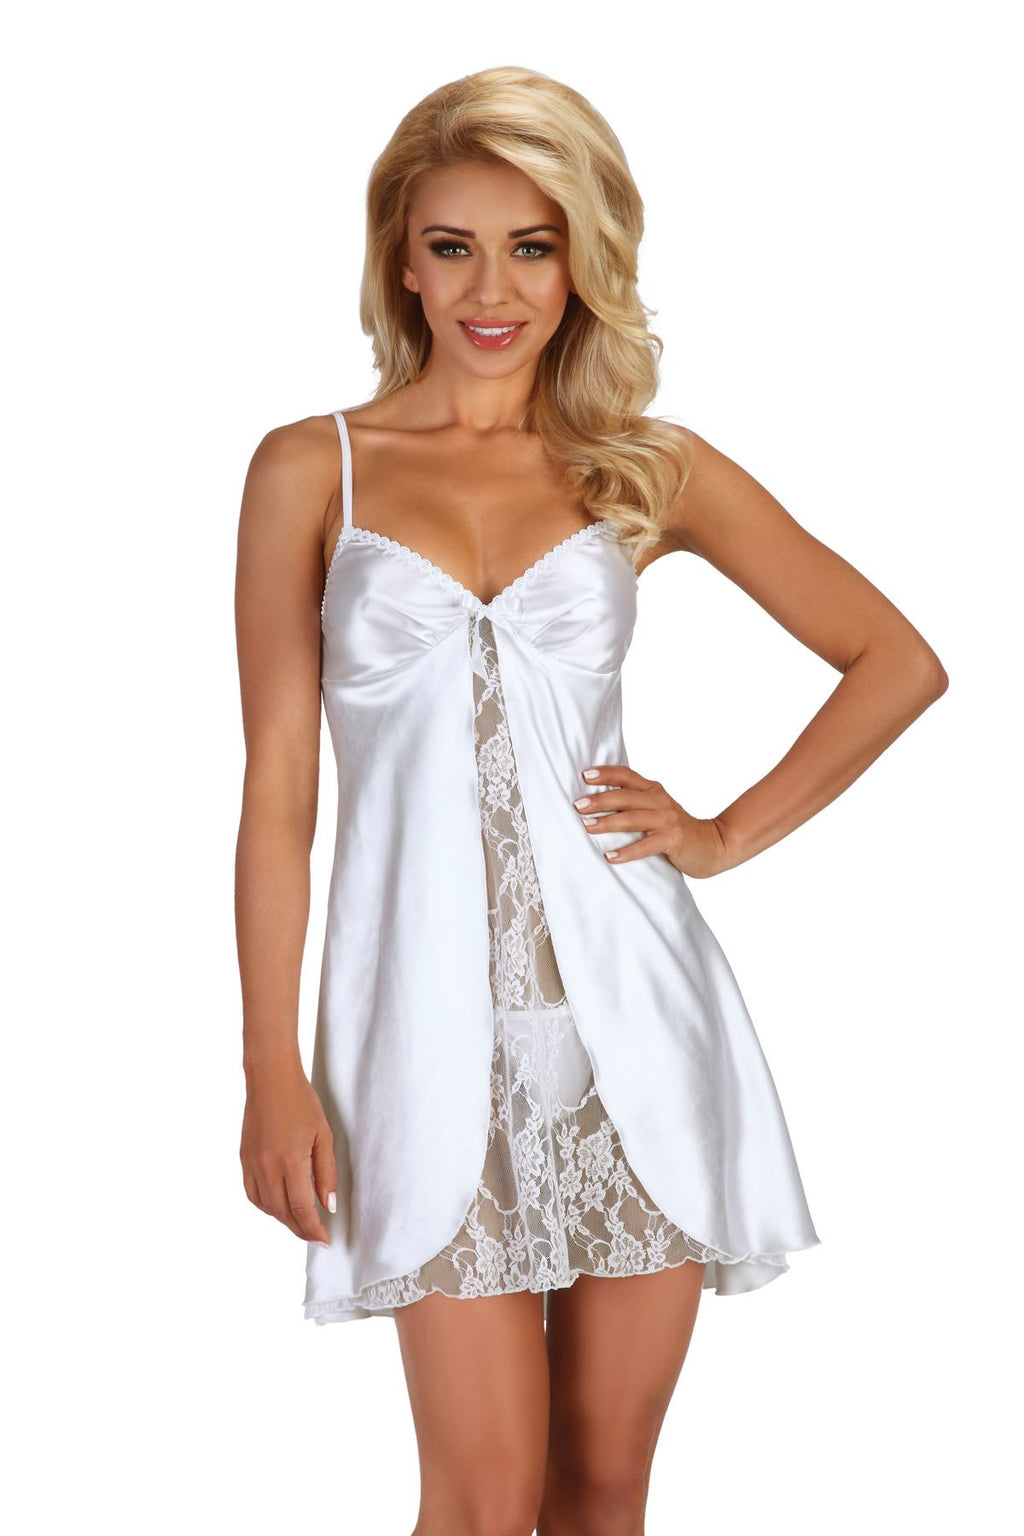 Beauty Night Alexandra White Satin and floral lace 2pc Lingerie set S-XL Women's